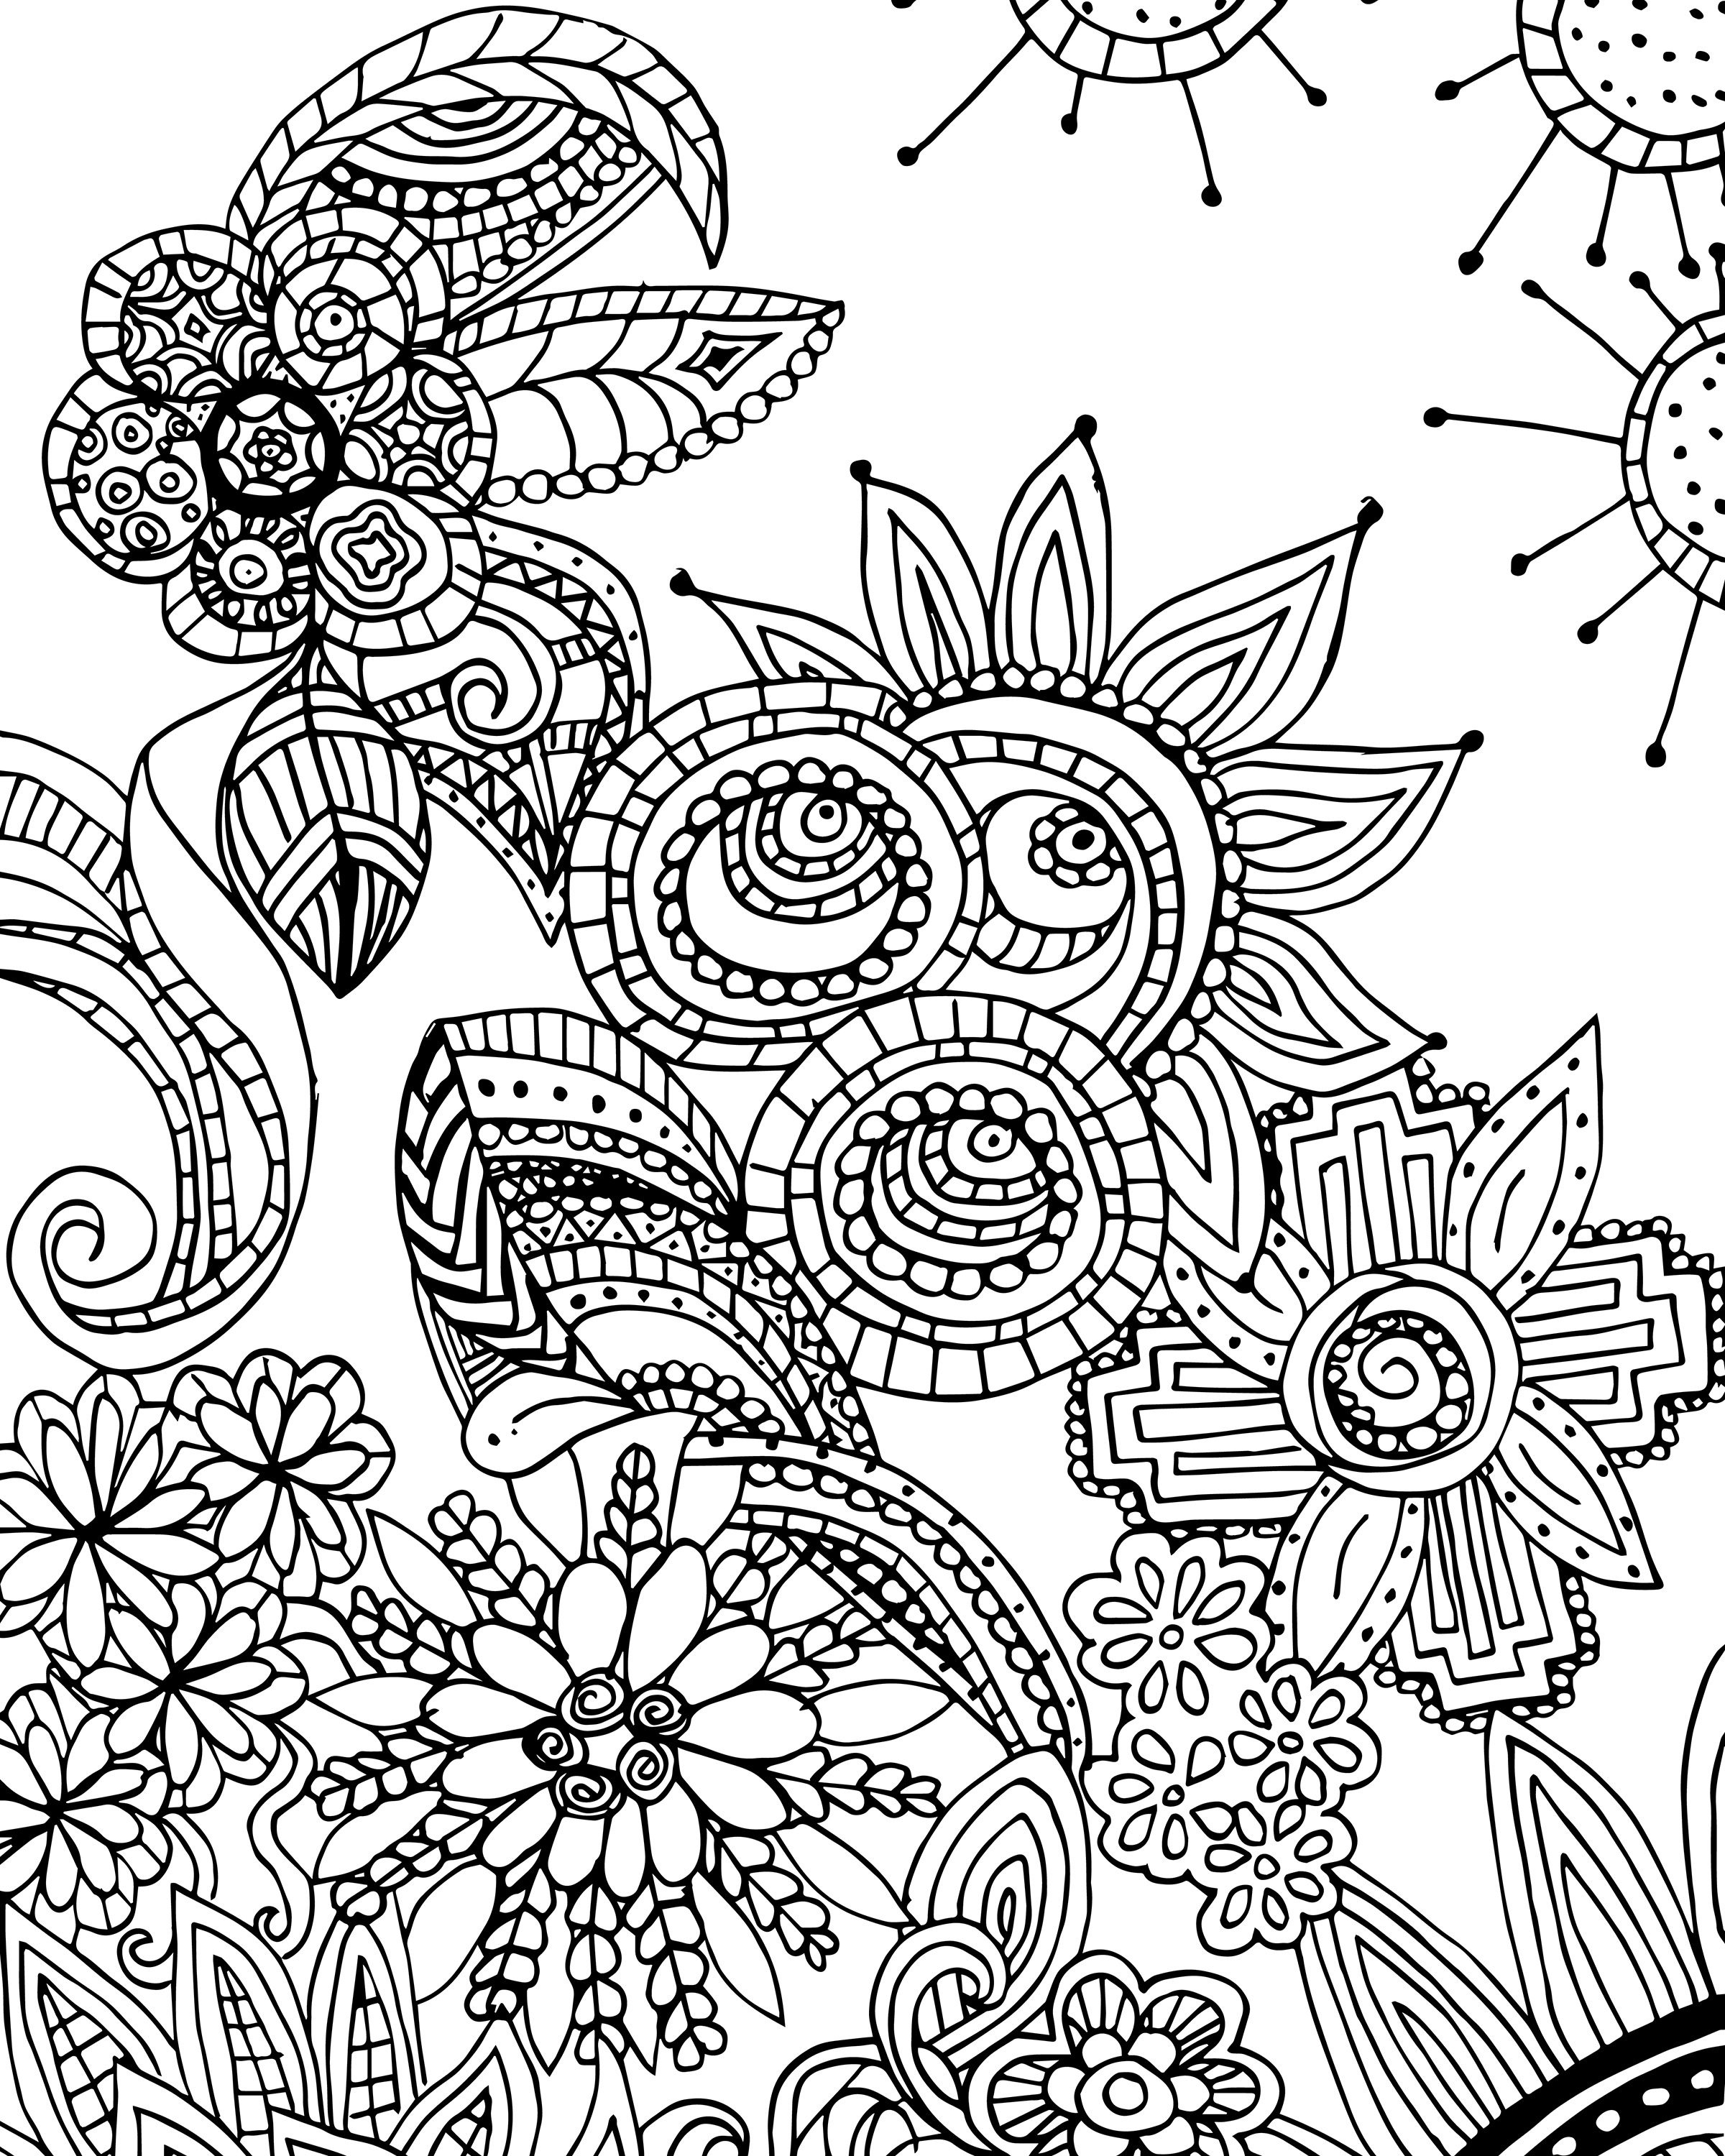 free zen coloring pages adult zen anti stress relax to print coloring pages printable free coloring zen pages